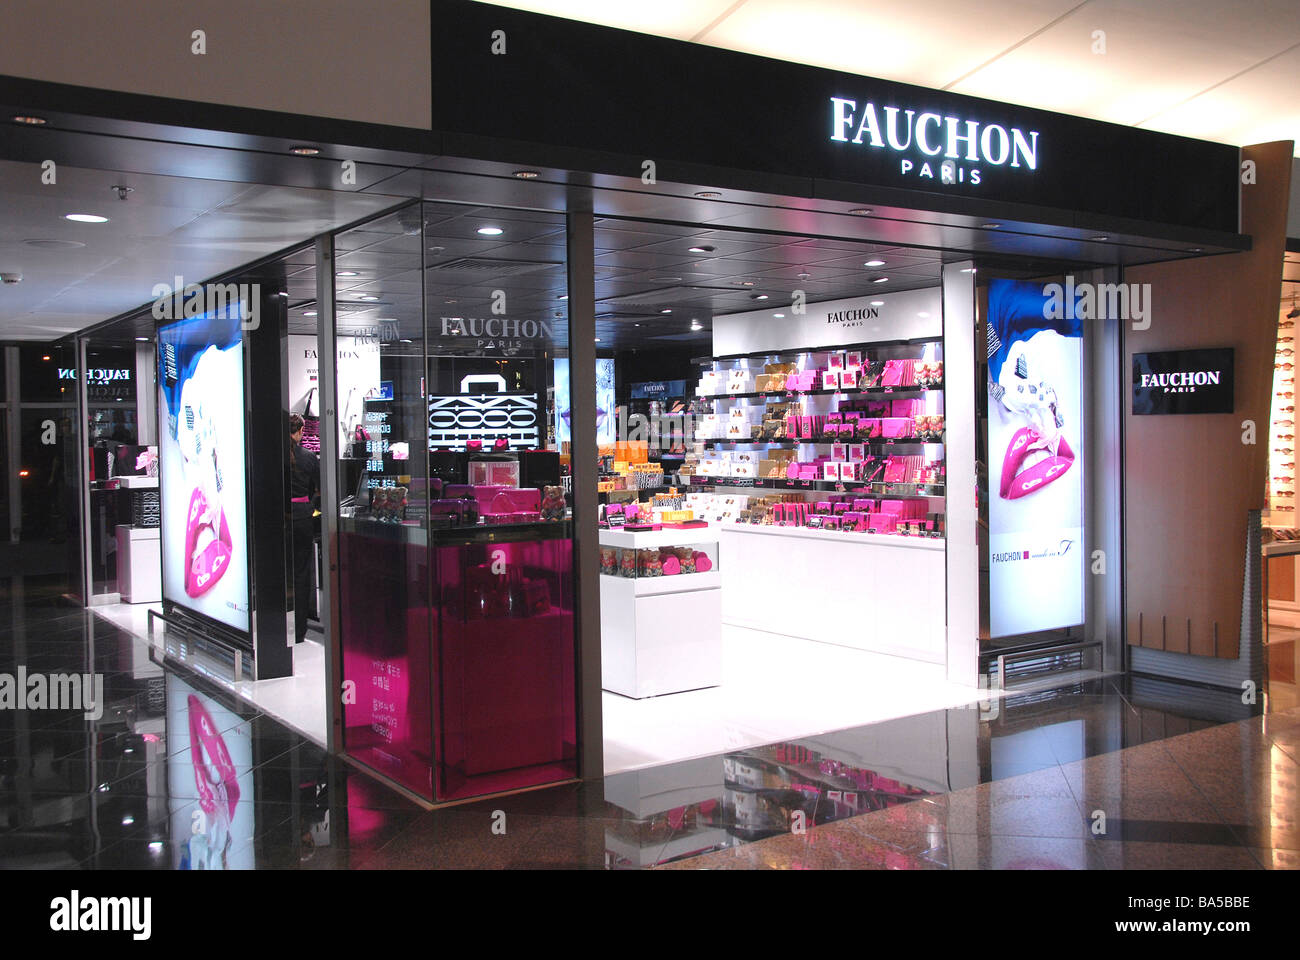 Fauchon shop, Hong Kong airport - Stock Image